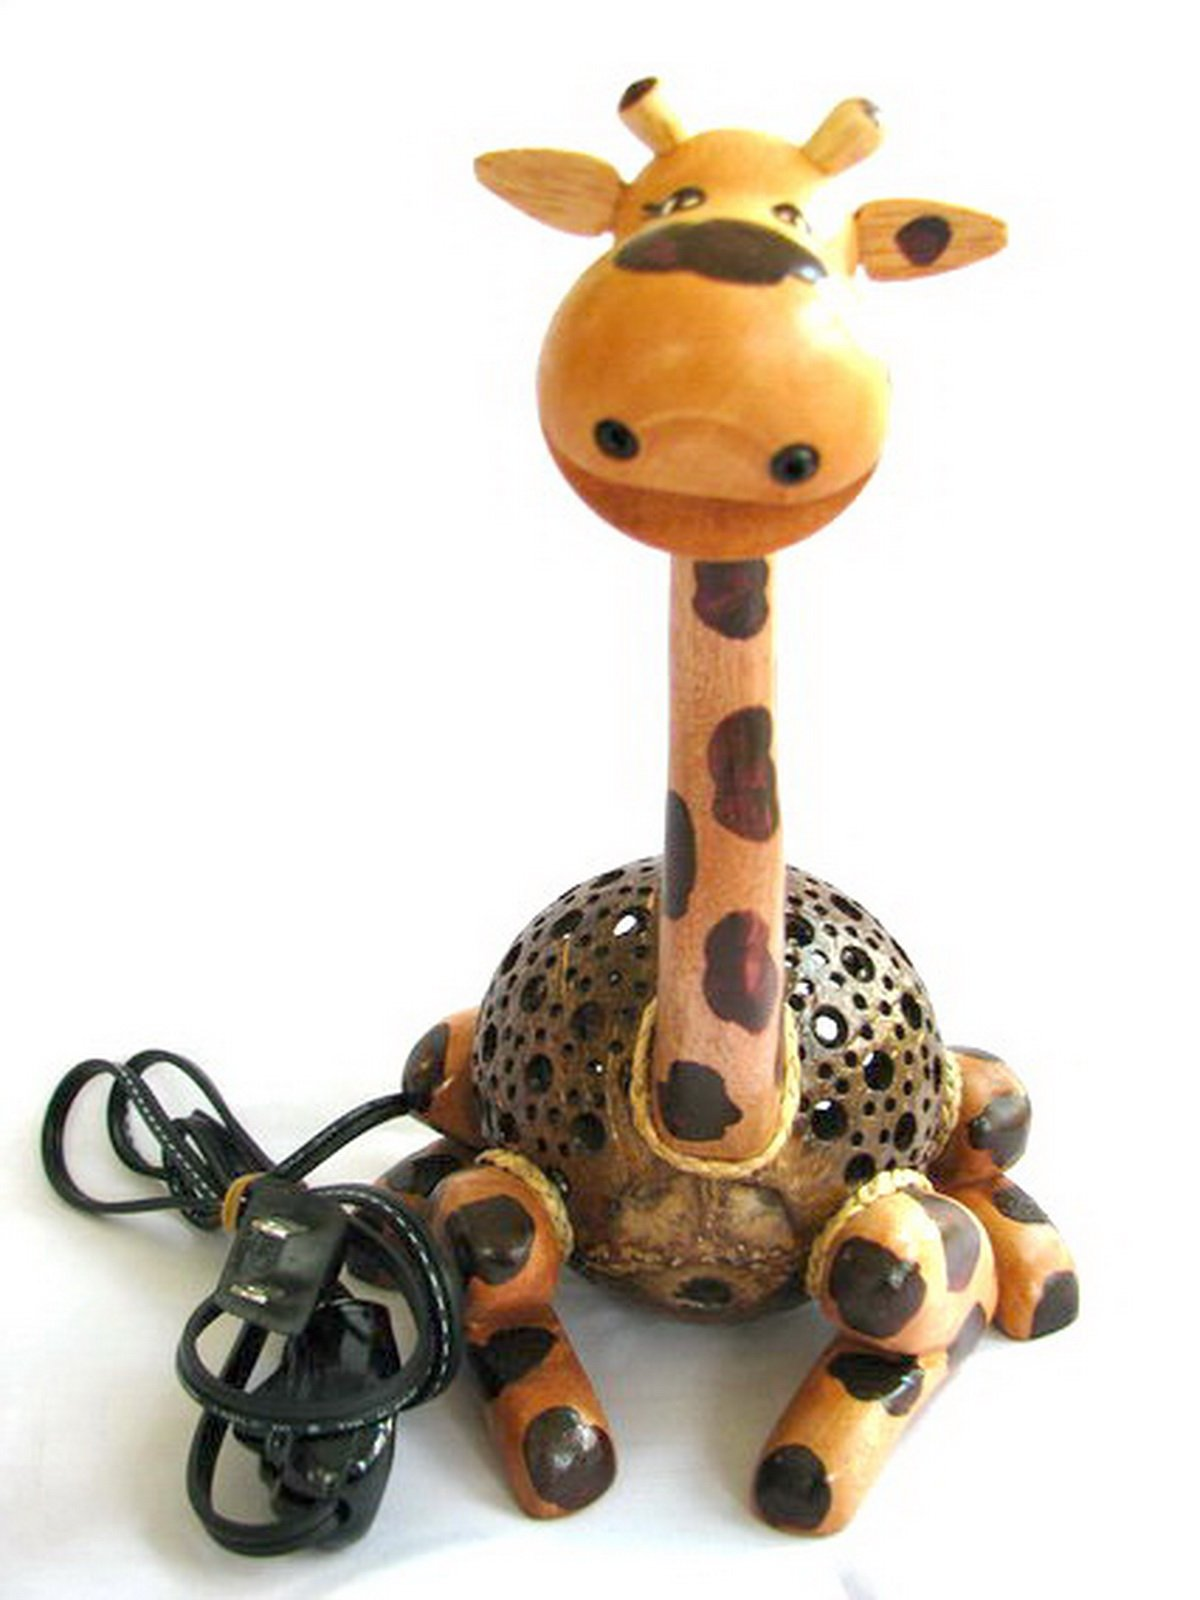 Coconut Shell Lamp - Giraffe Lamp 10'' Height - Wooden Crafts Handmade of Thailand Craftsman by Thailand Gifts Shop